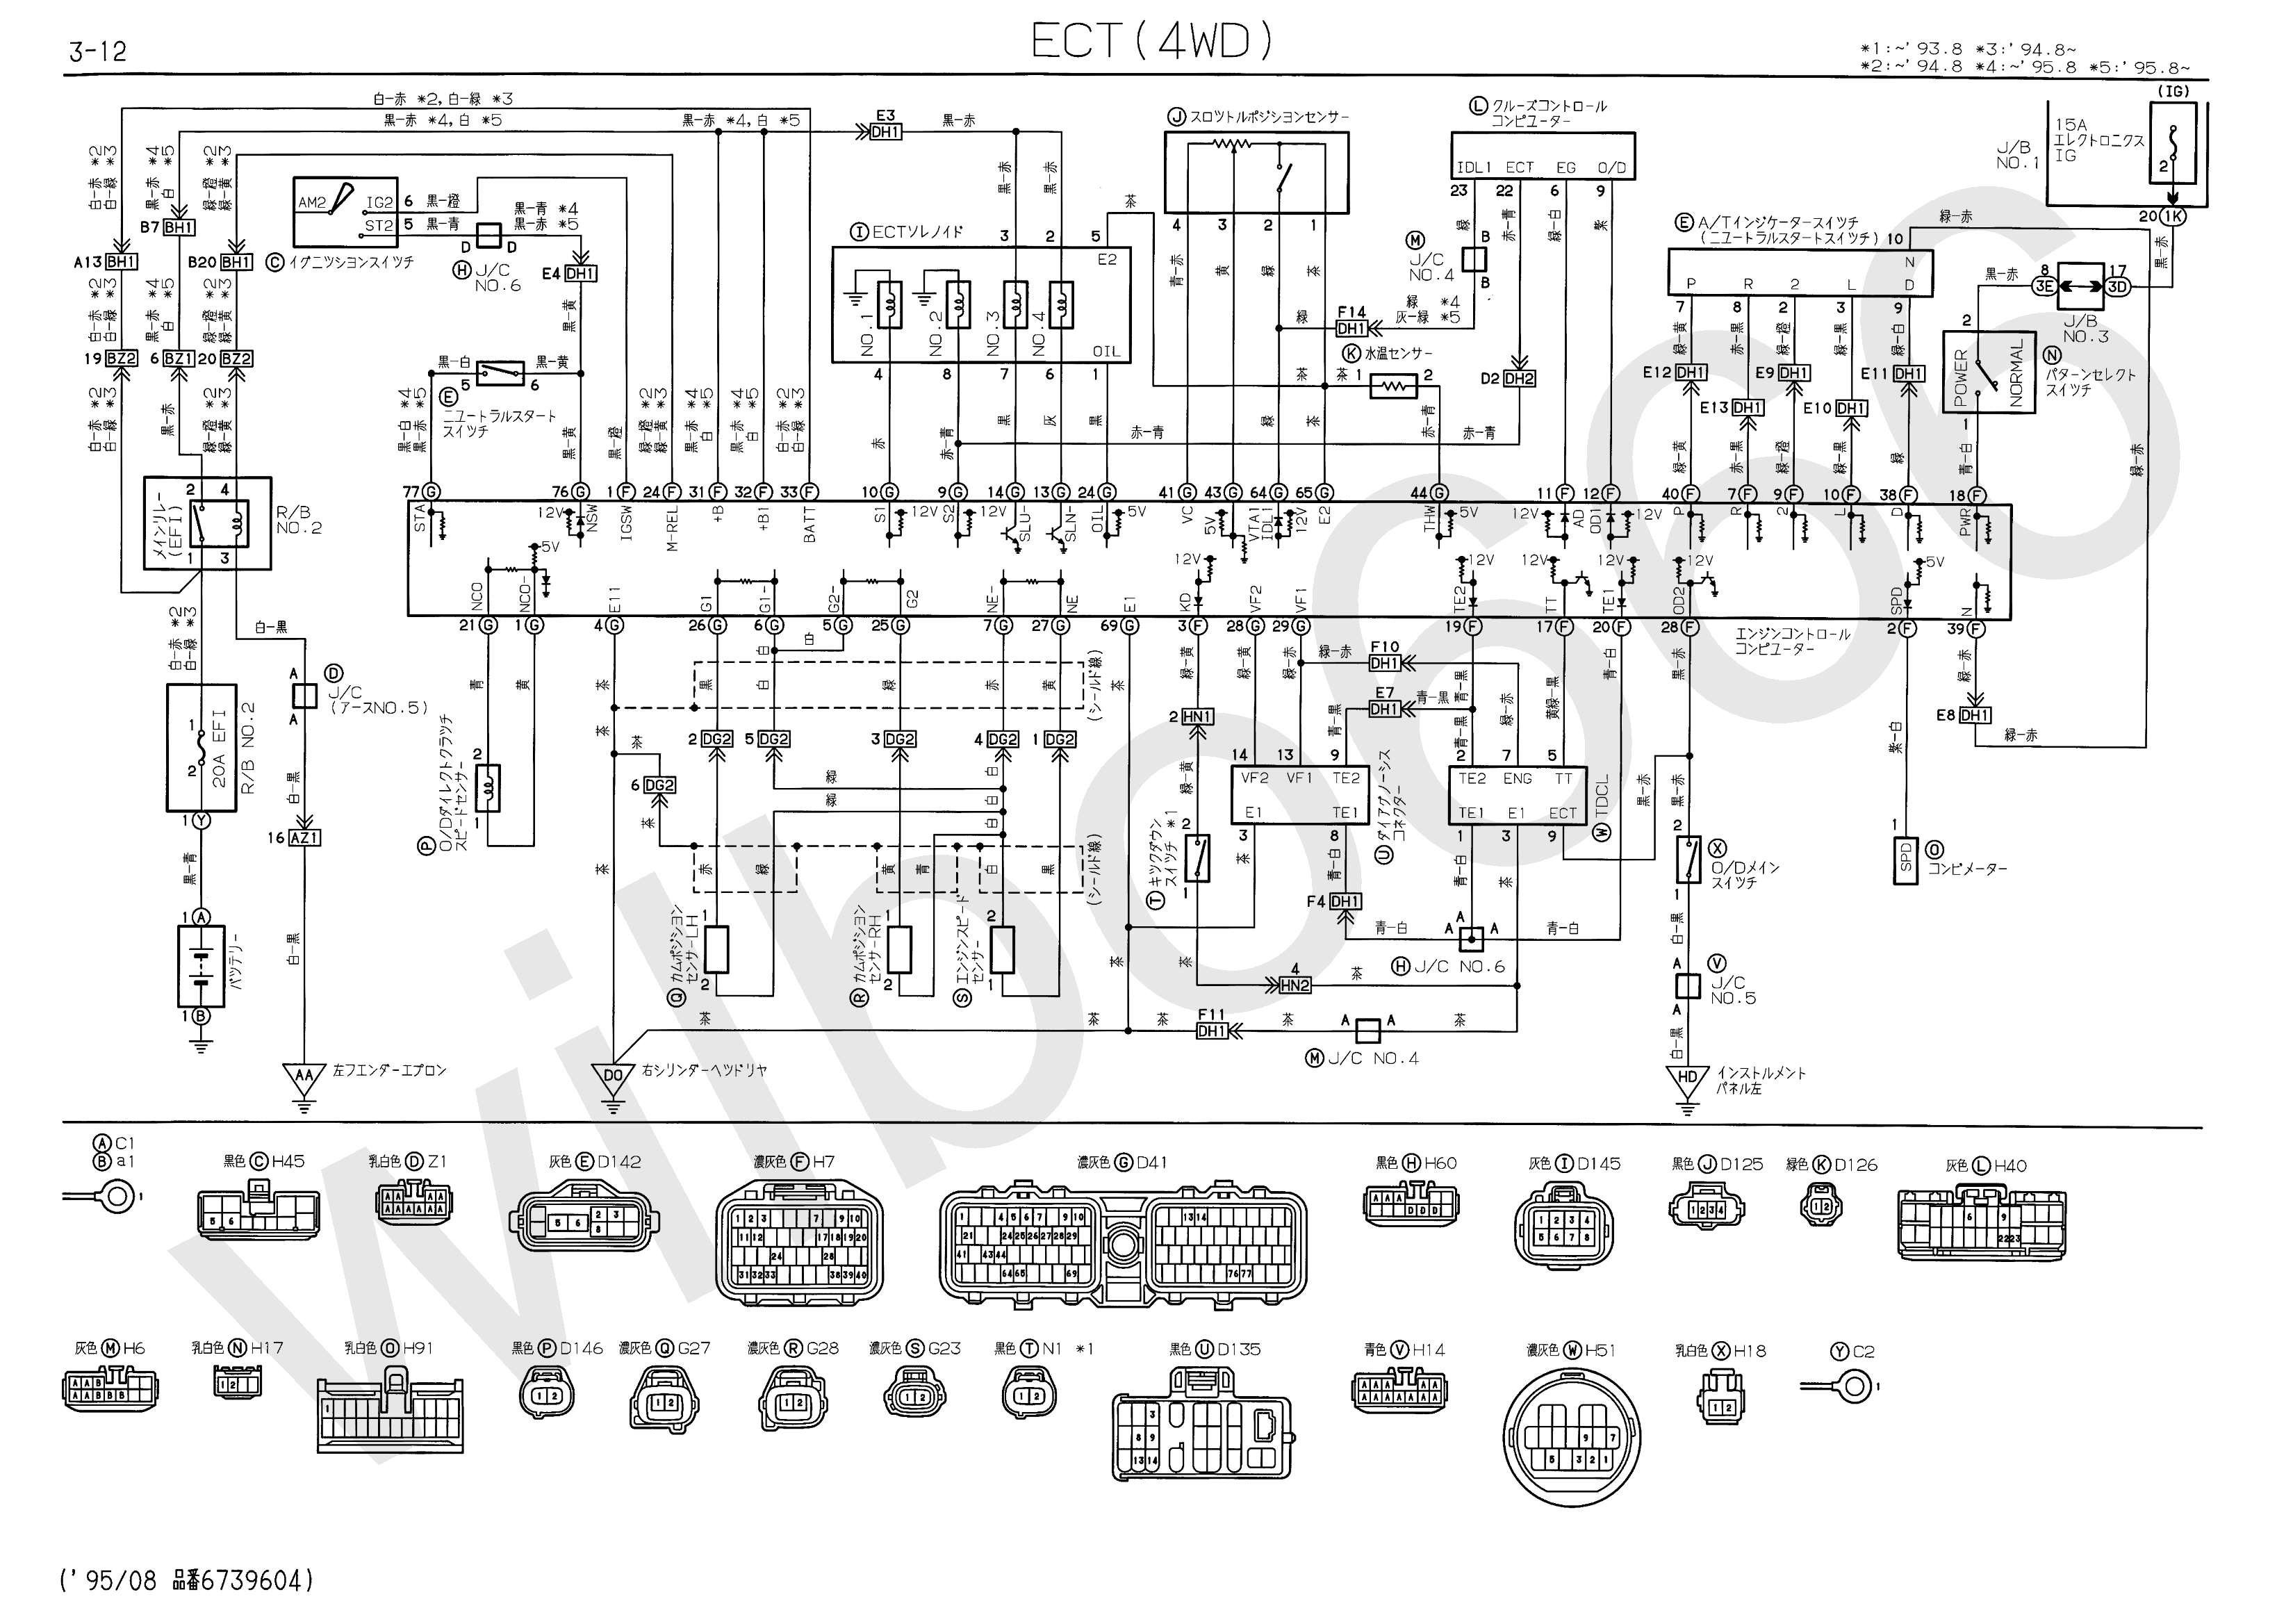 s14 wiring diagram with Hayes 2001 F250 Engine Diagram on Rb 25 Det Neo Wiring Harness furthermore Index php in addition Hayes 2001 F250 Engine Diagram additionally Ign A Wiring Diagram Gm moreover Reznor Wiring Schematic.